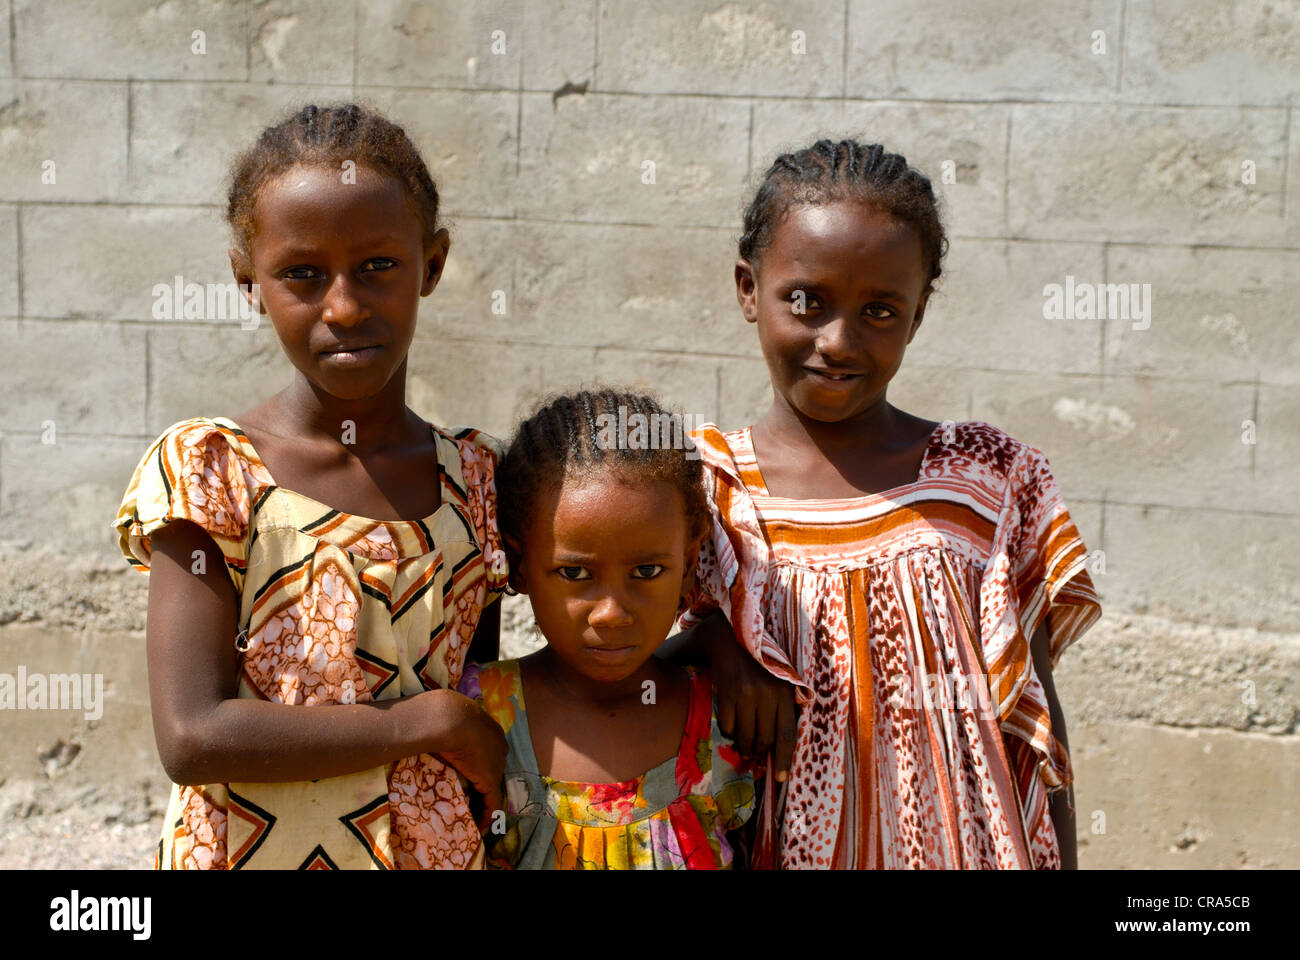 Girls of the Afar tribe in Tadjoura, Djibouti, East Africa, Africa - Stock Image